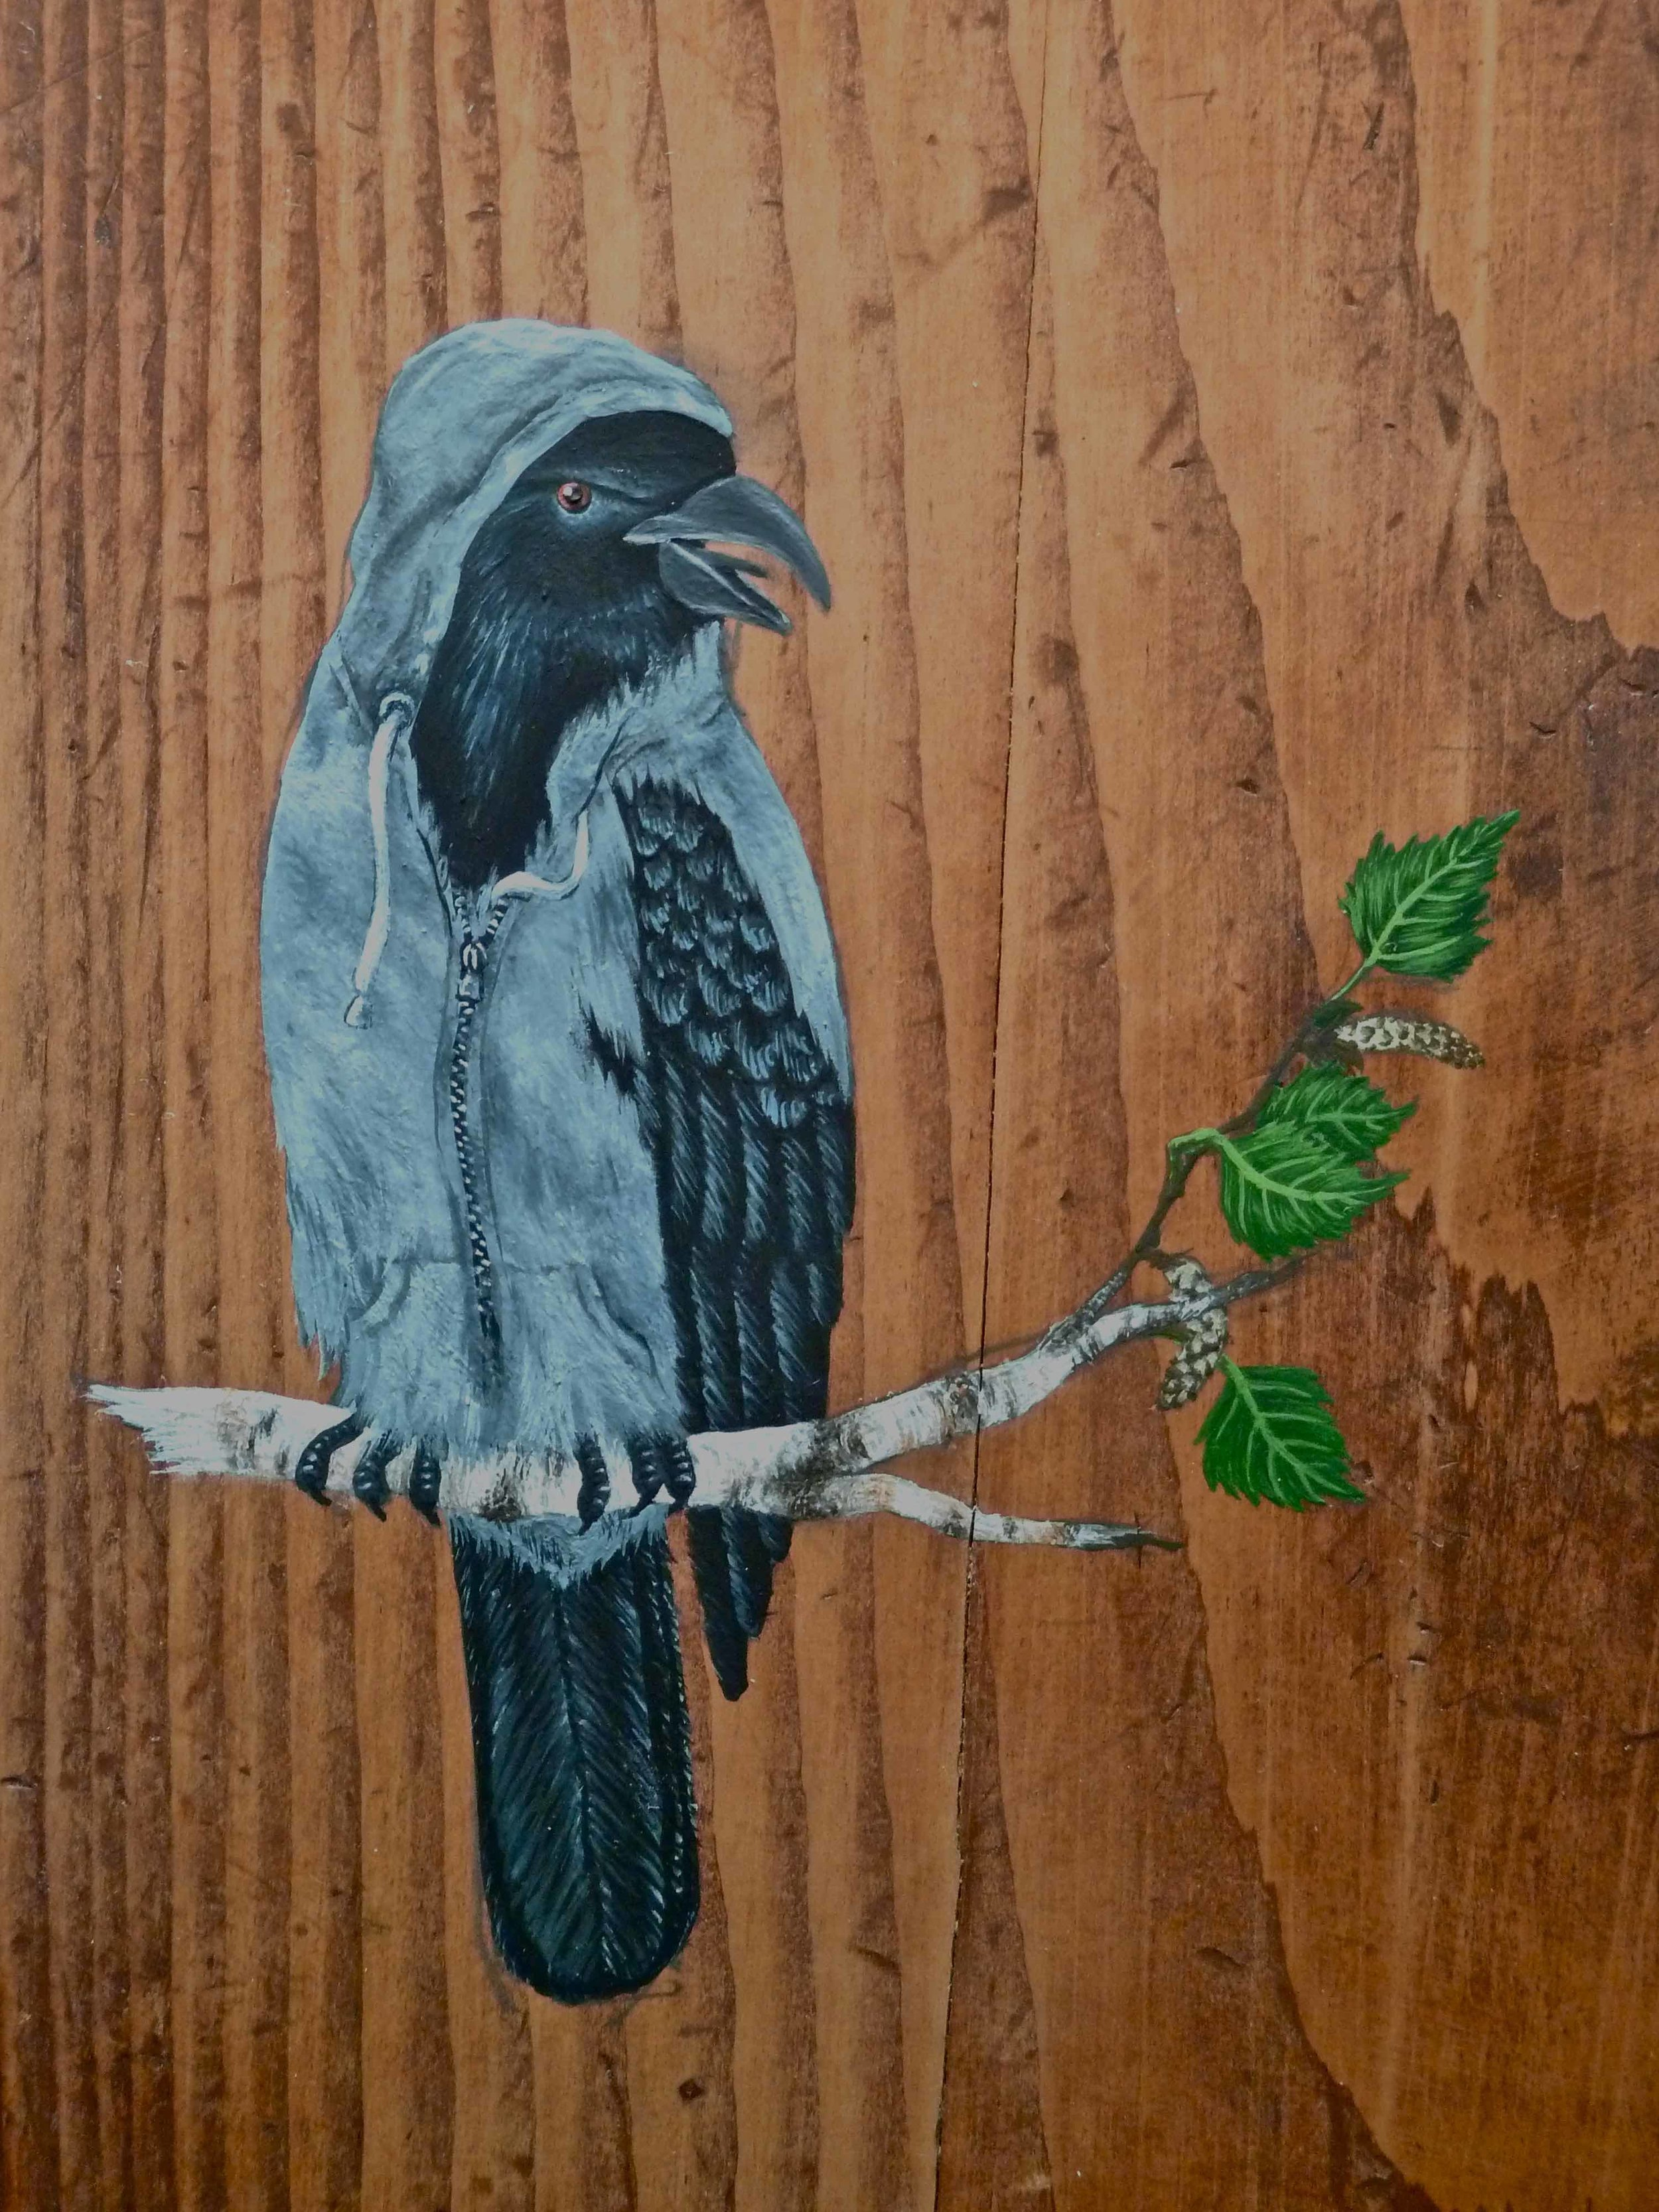 Hooded Crow  Corvus cornix  (gouache on wood), 2010.  Something tells me it's all happening at the Zoo  , Kevin Kavanagh Gallery